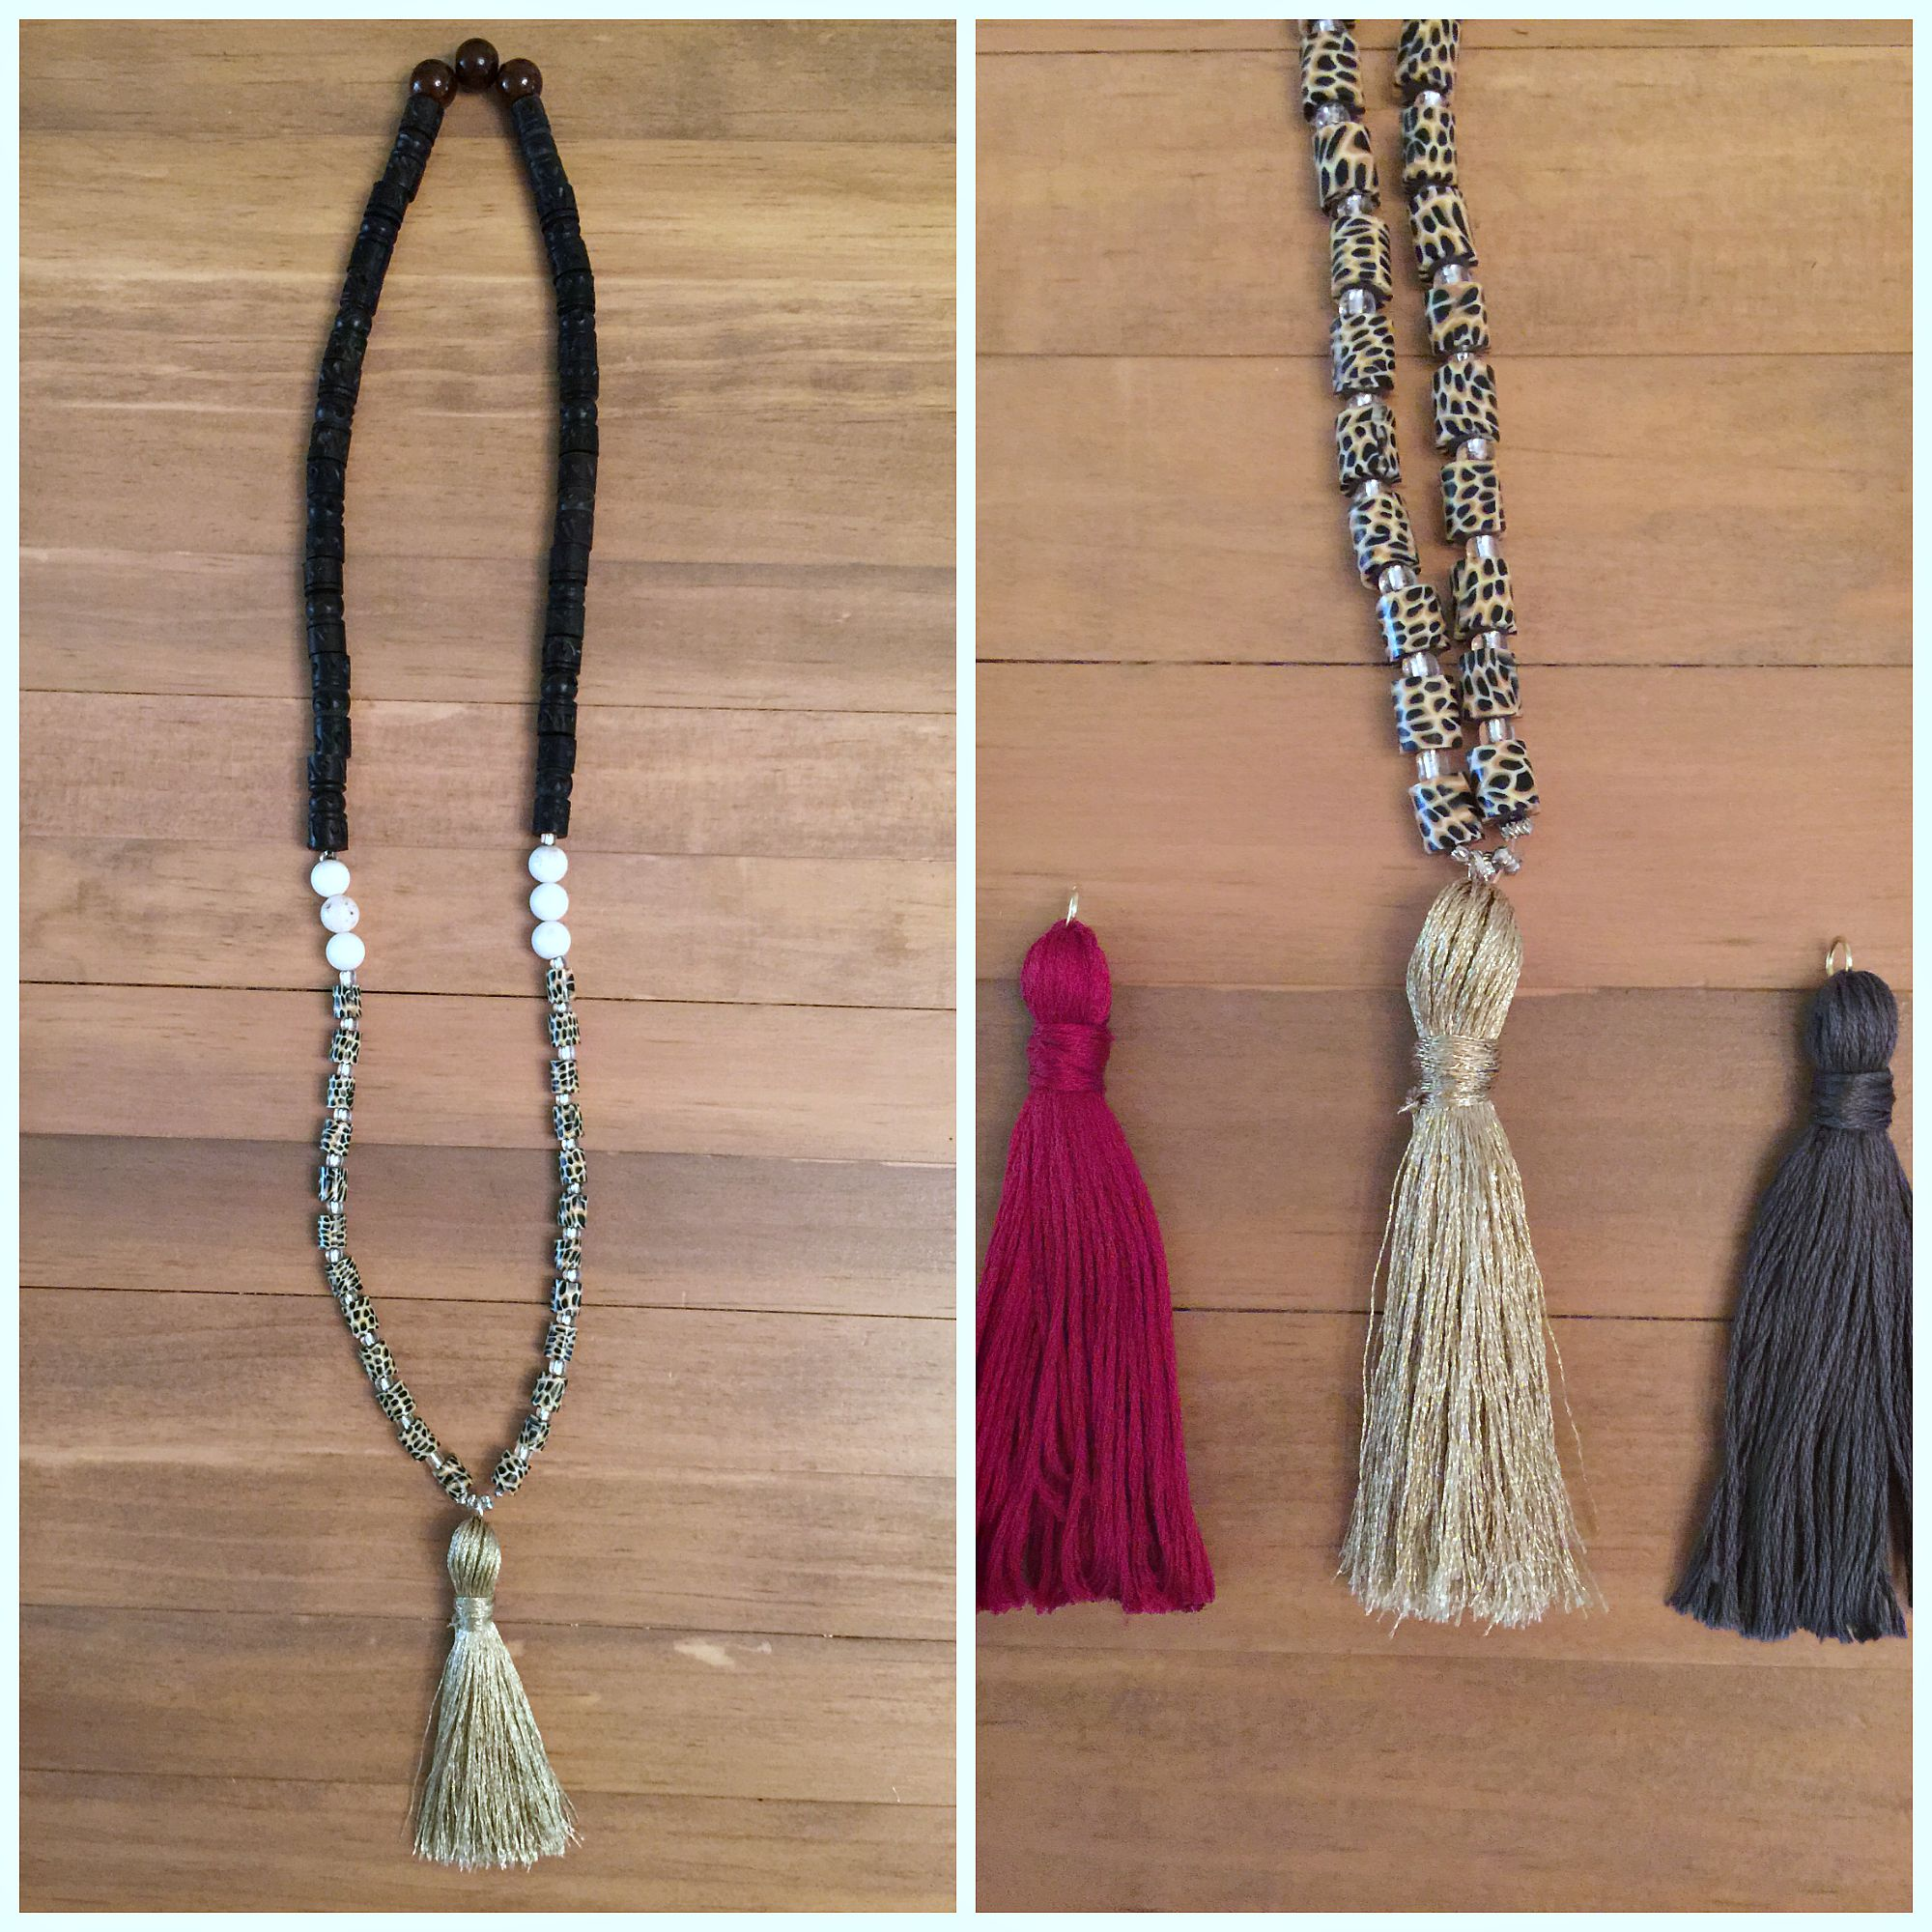 zoom necklace e constrain redesign tassel shop slide view qlt hei sunrise people free fit